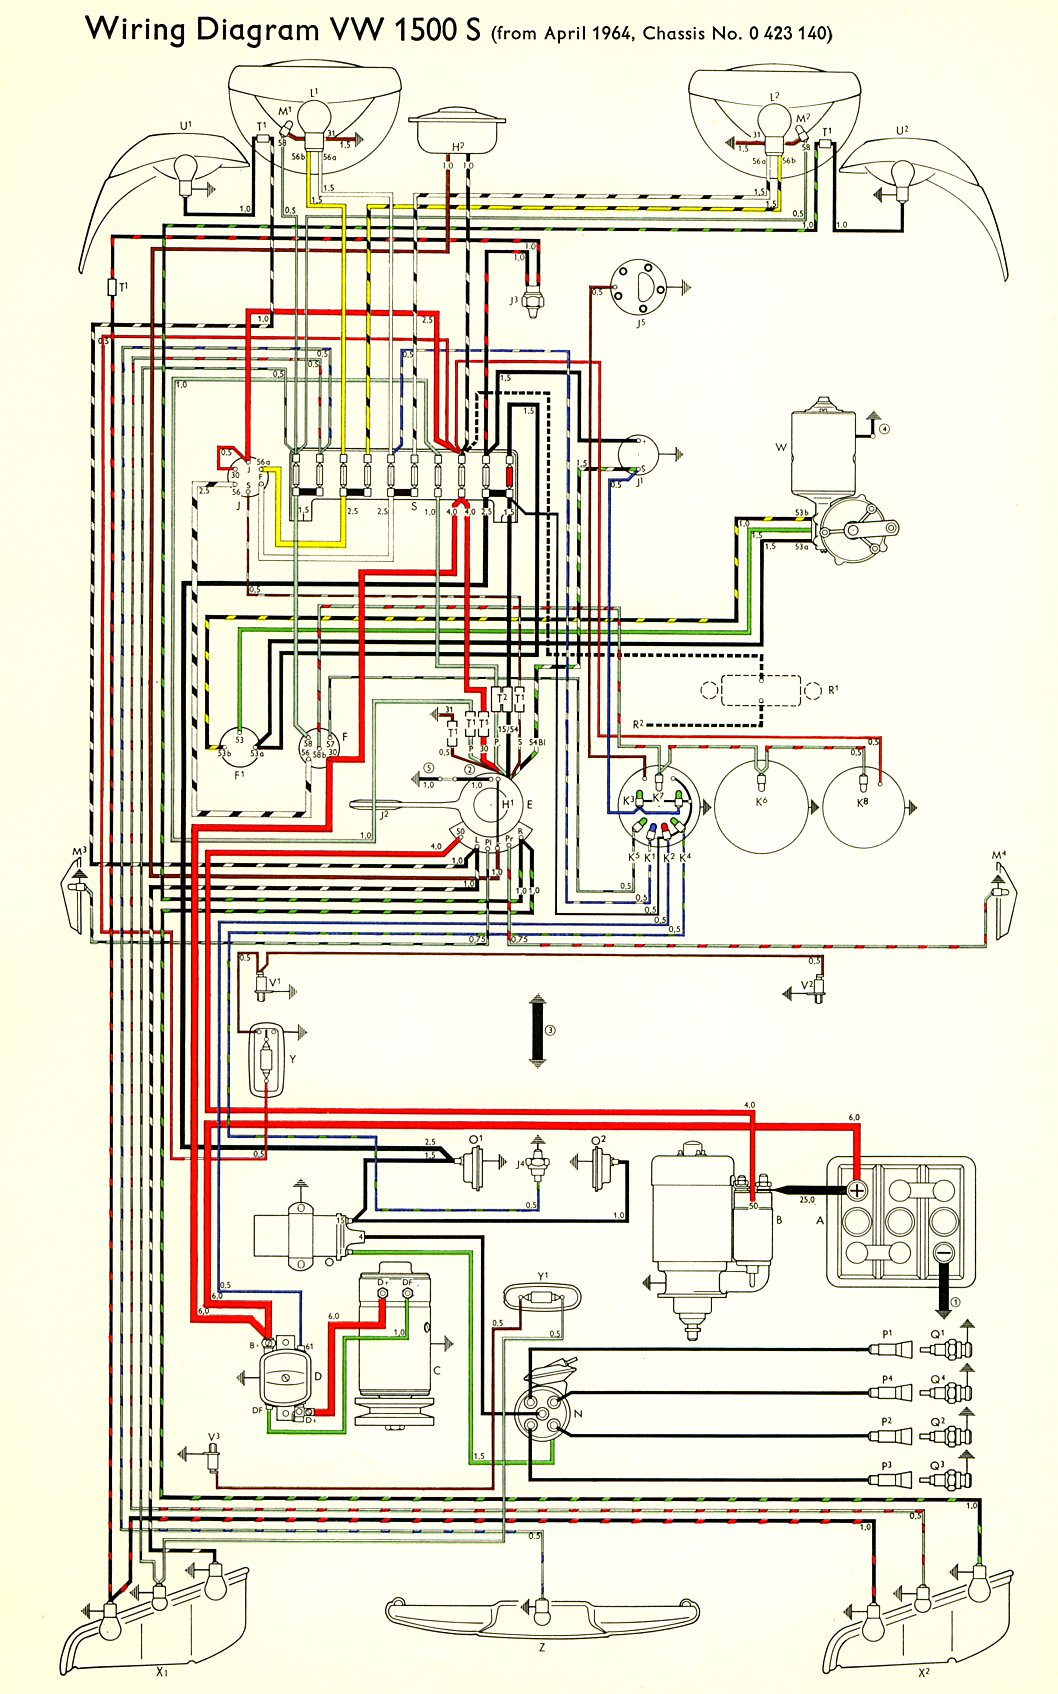 1967 porsche 912 wiring diagram thesamba com type 3 wiring diagrams  thesamba com type 3 wiring diagrams